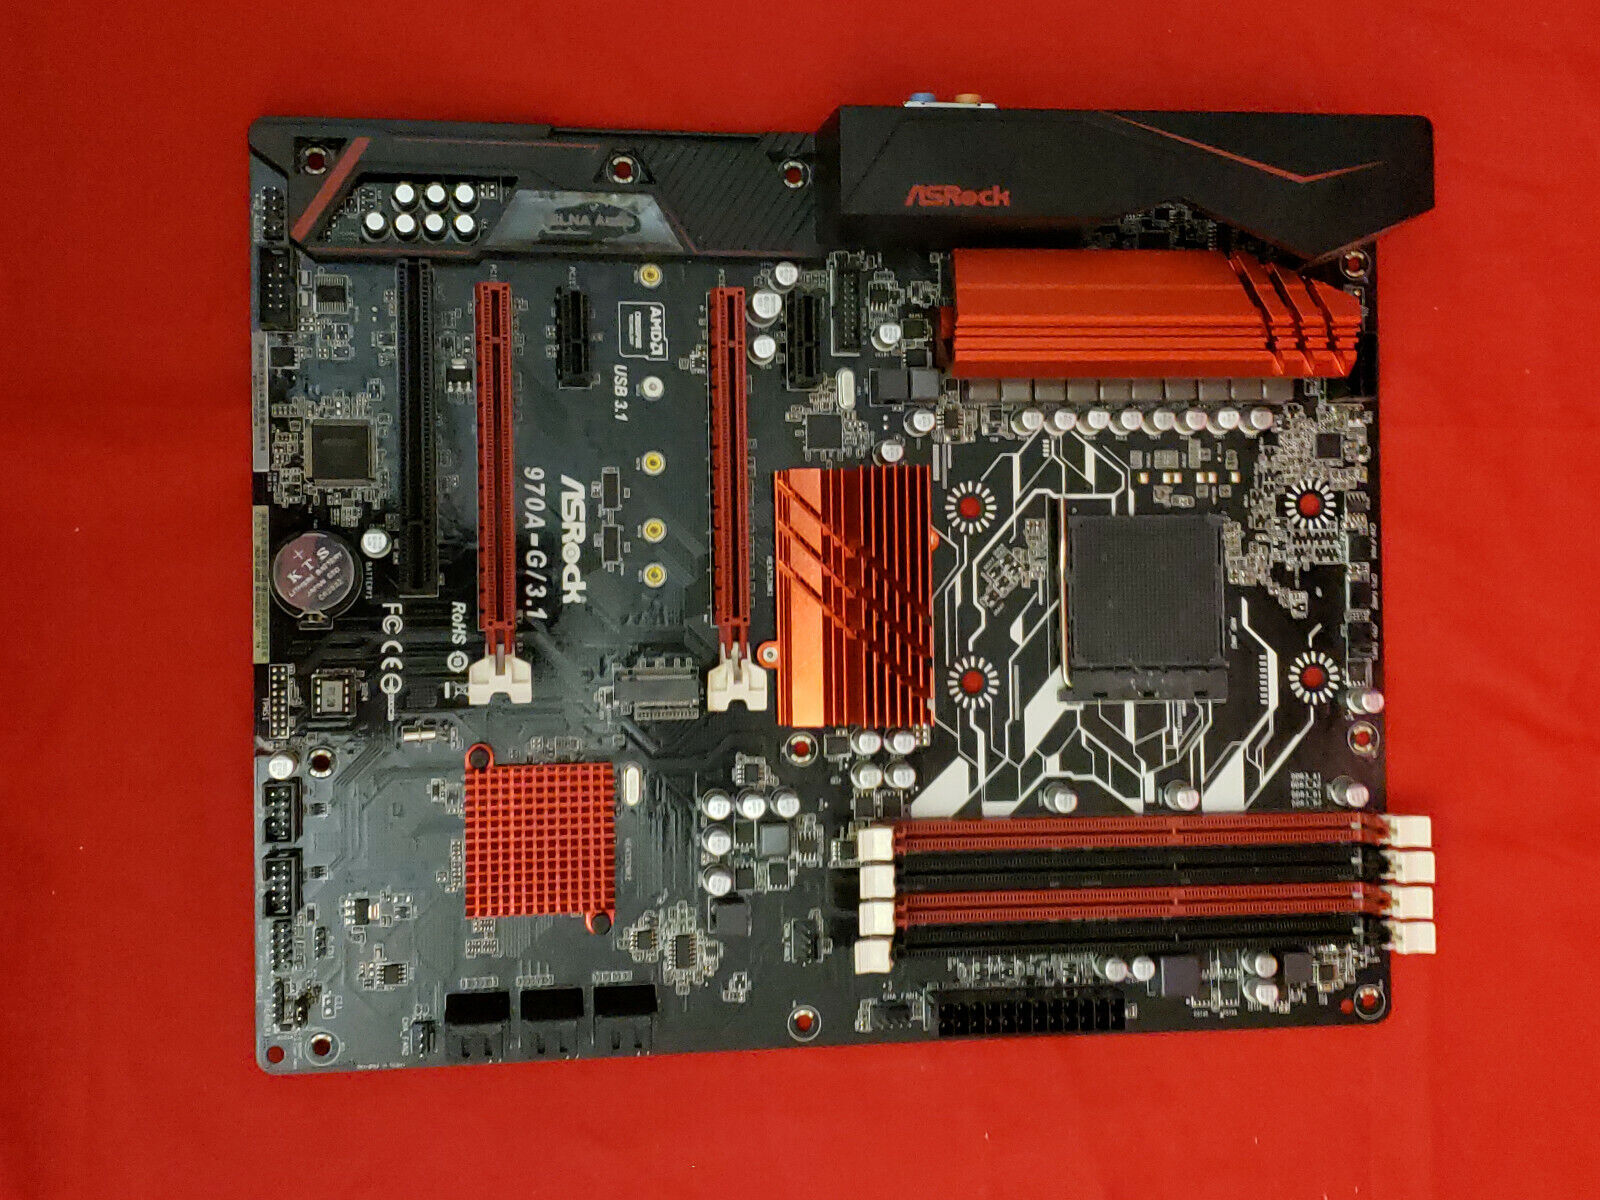 ASRock 970AG31 AM3 AMD Motherboard  - $67.00